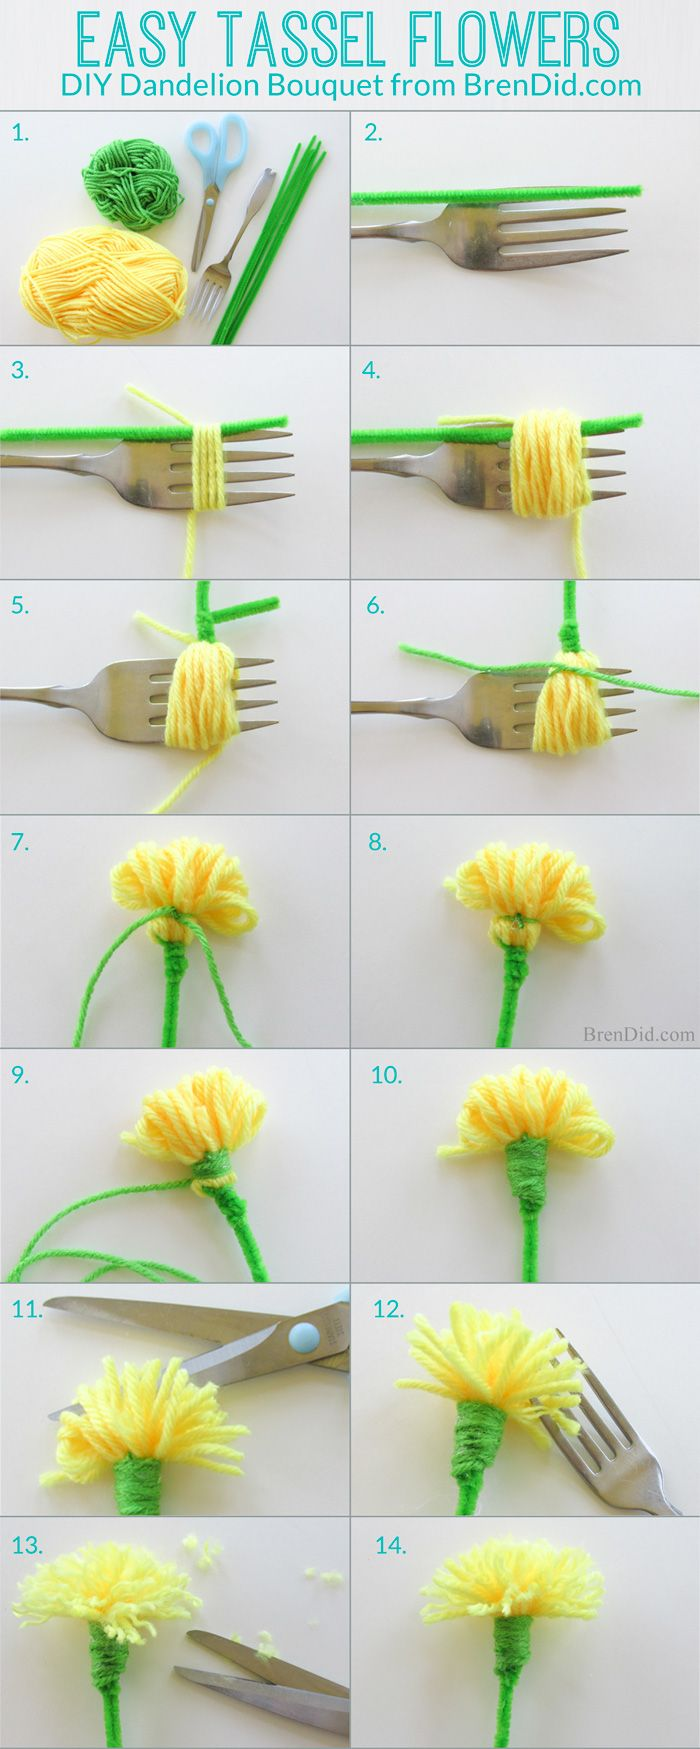 742 best elementary school craft ideas images on pinterest crafts how to make easy tassel flowers mothers day crafts for kidsdiy solutioingenieria Choice Image